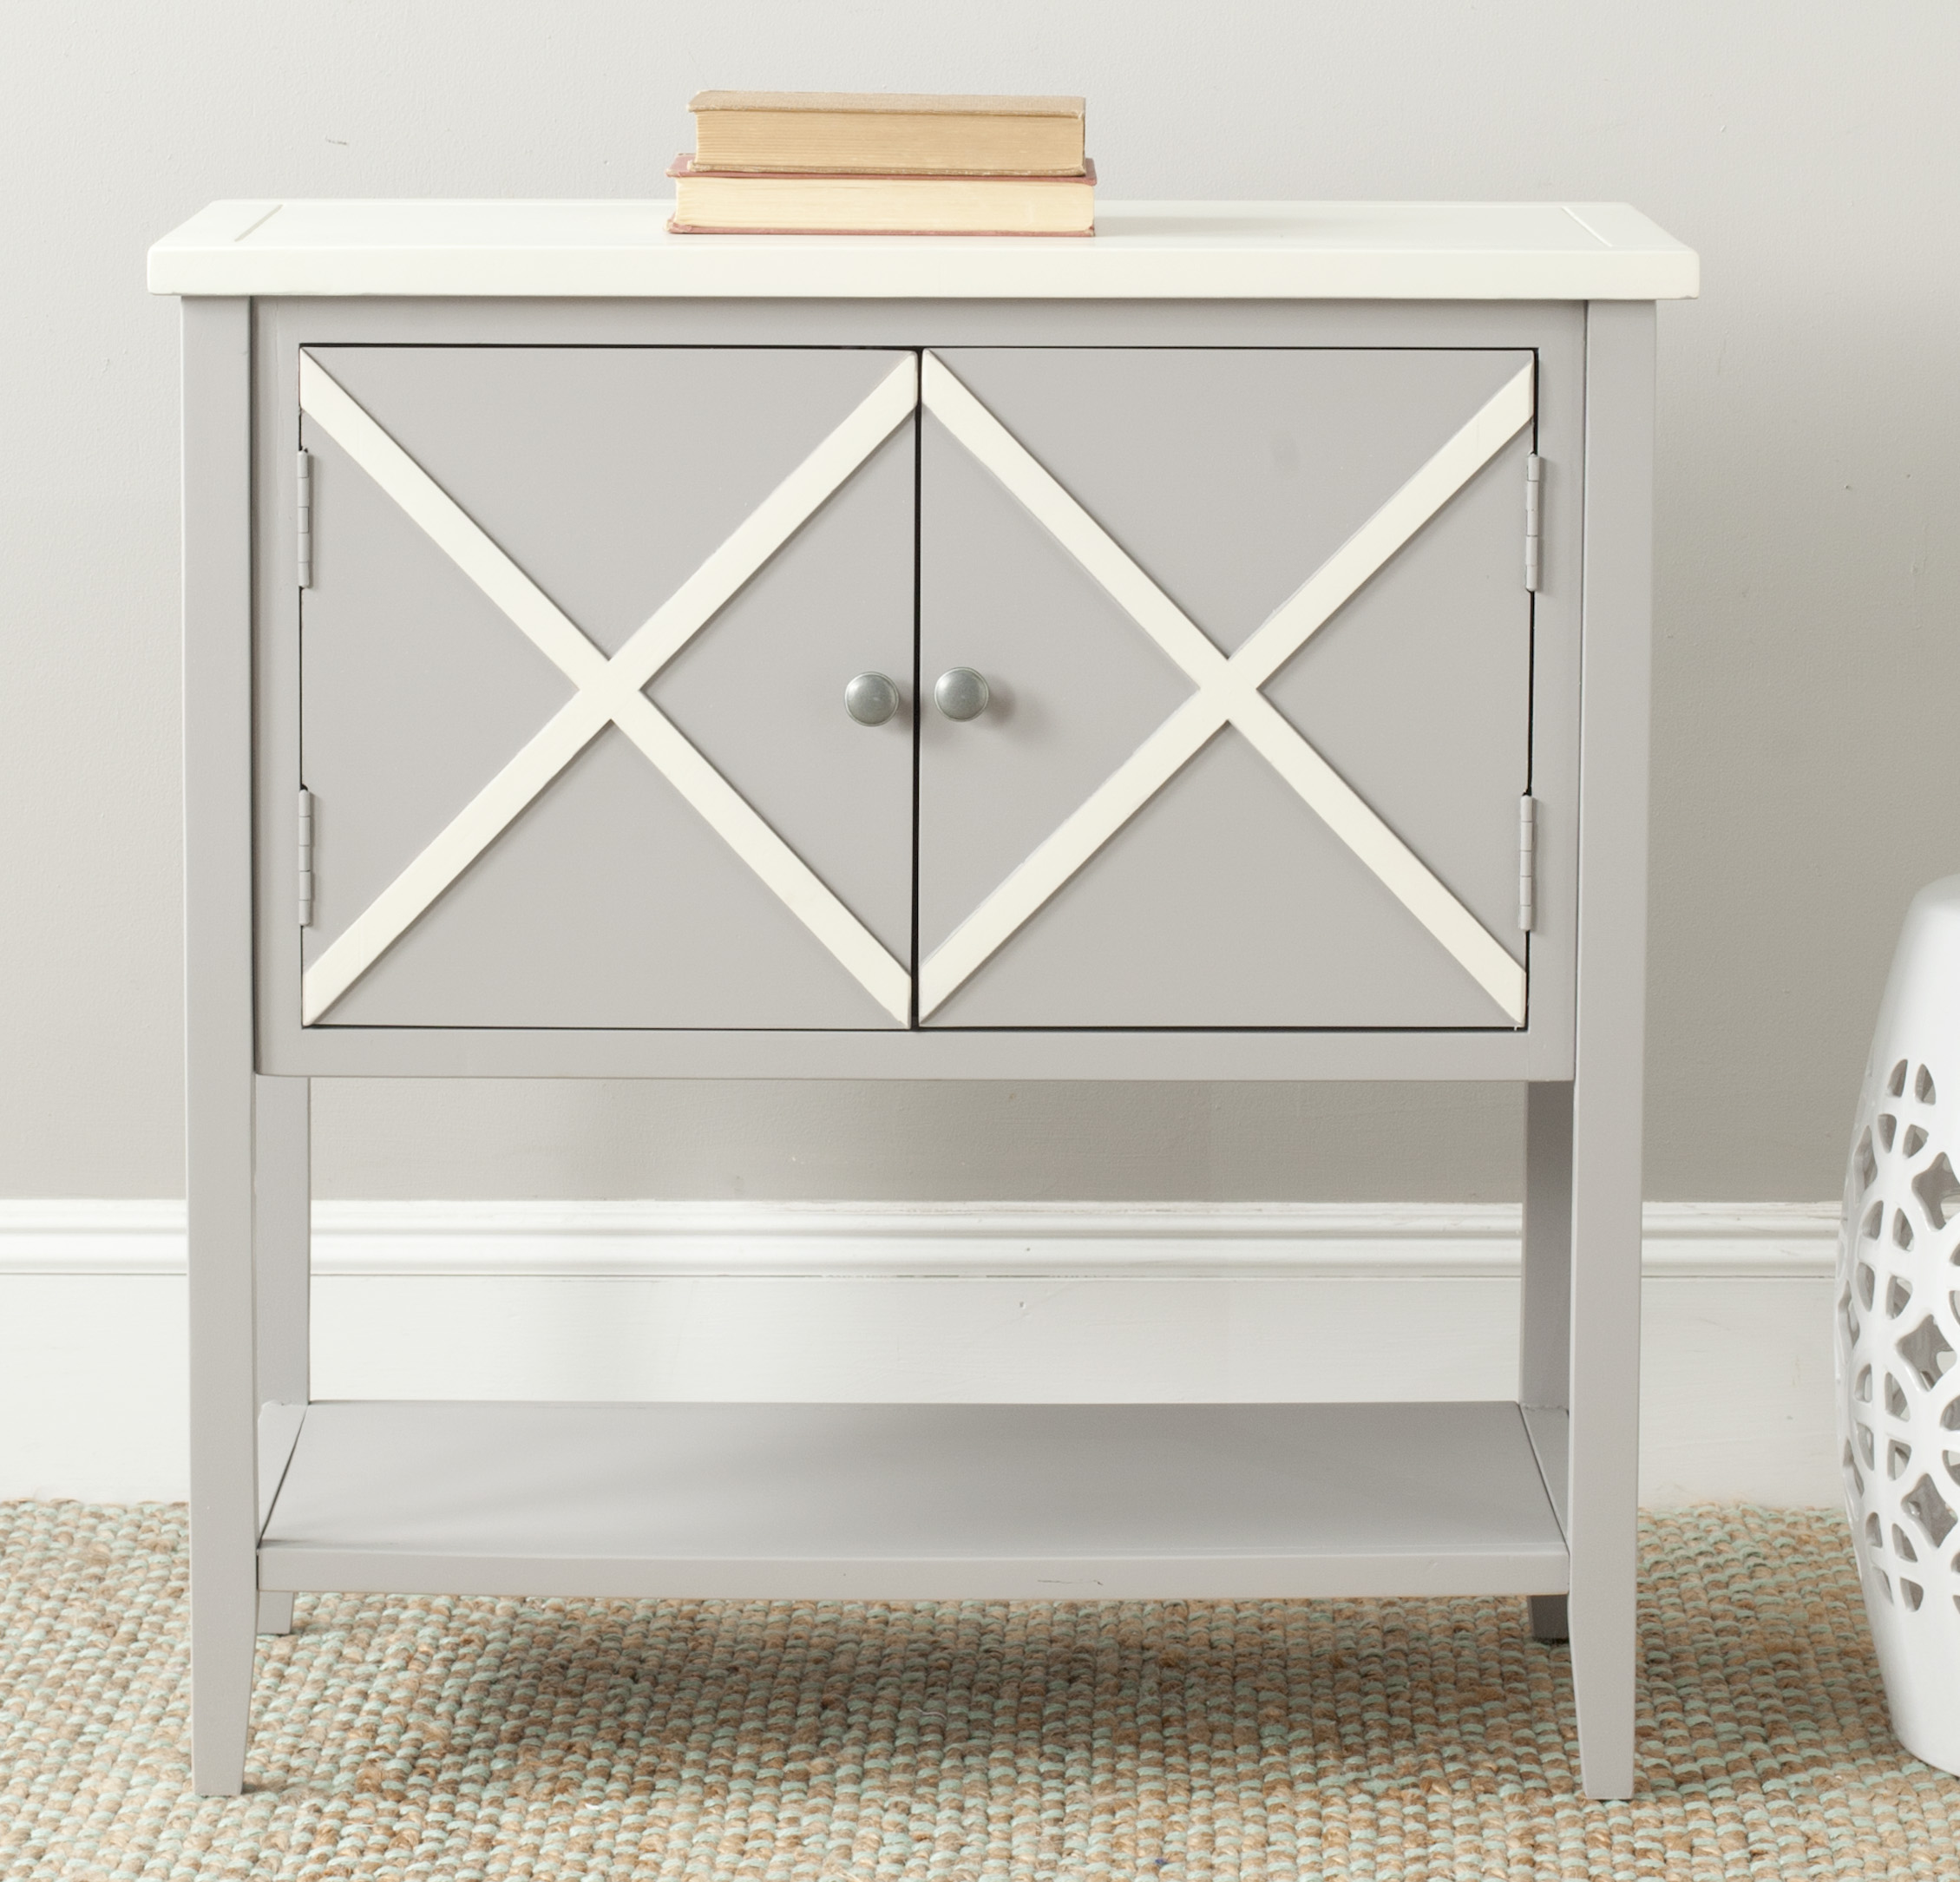 Safavieh Polly Sideboard